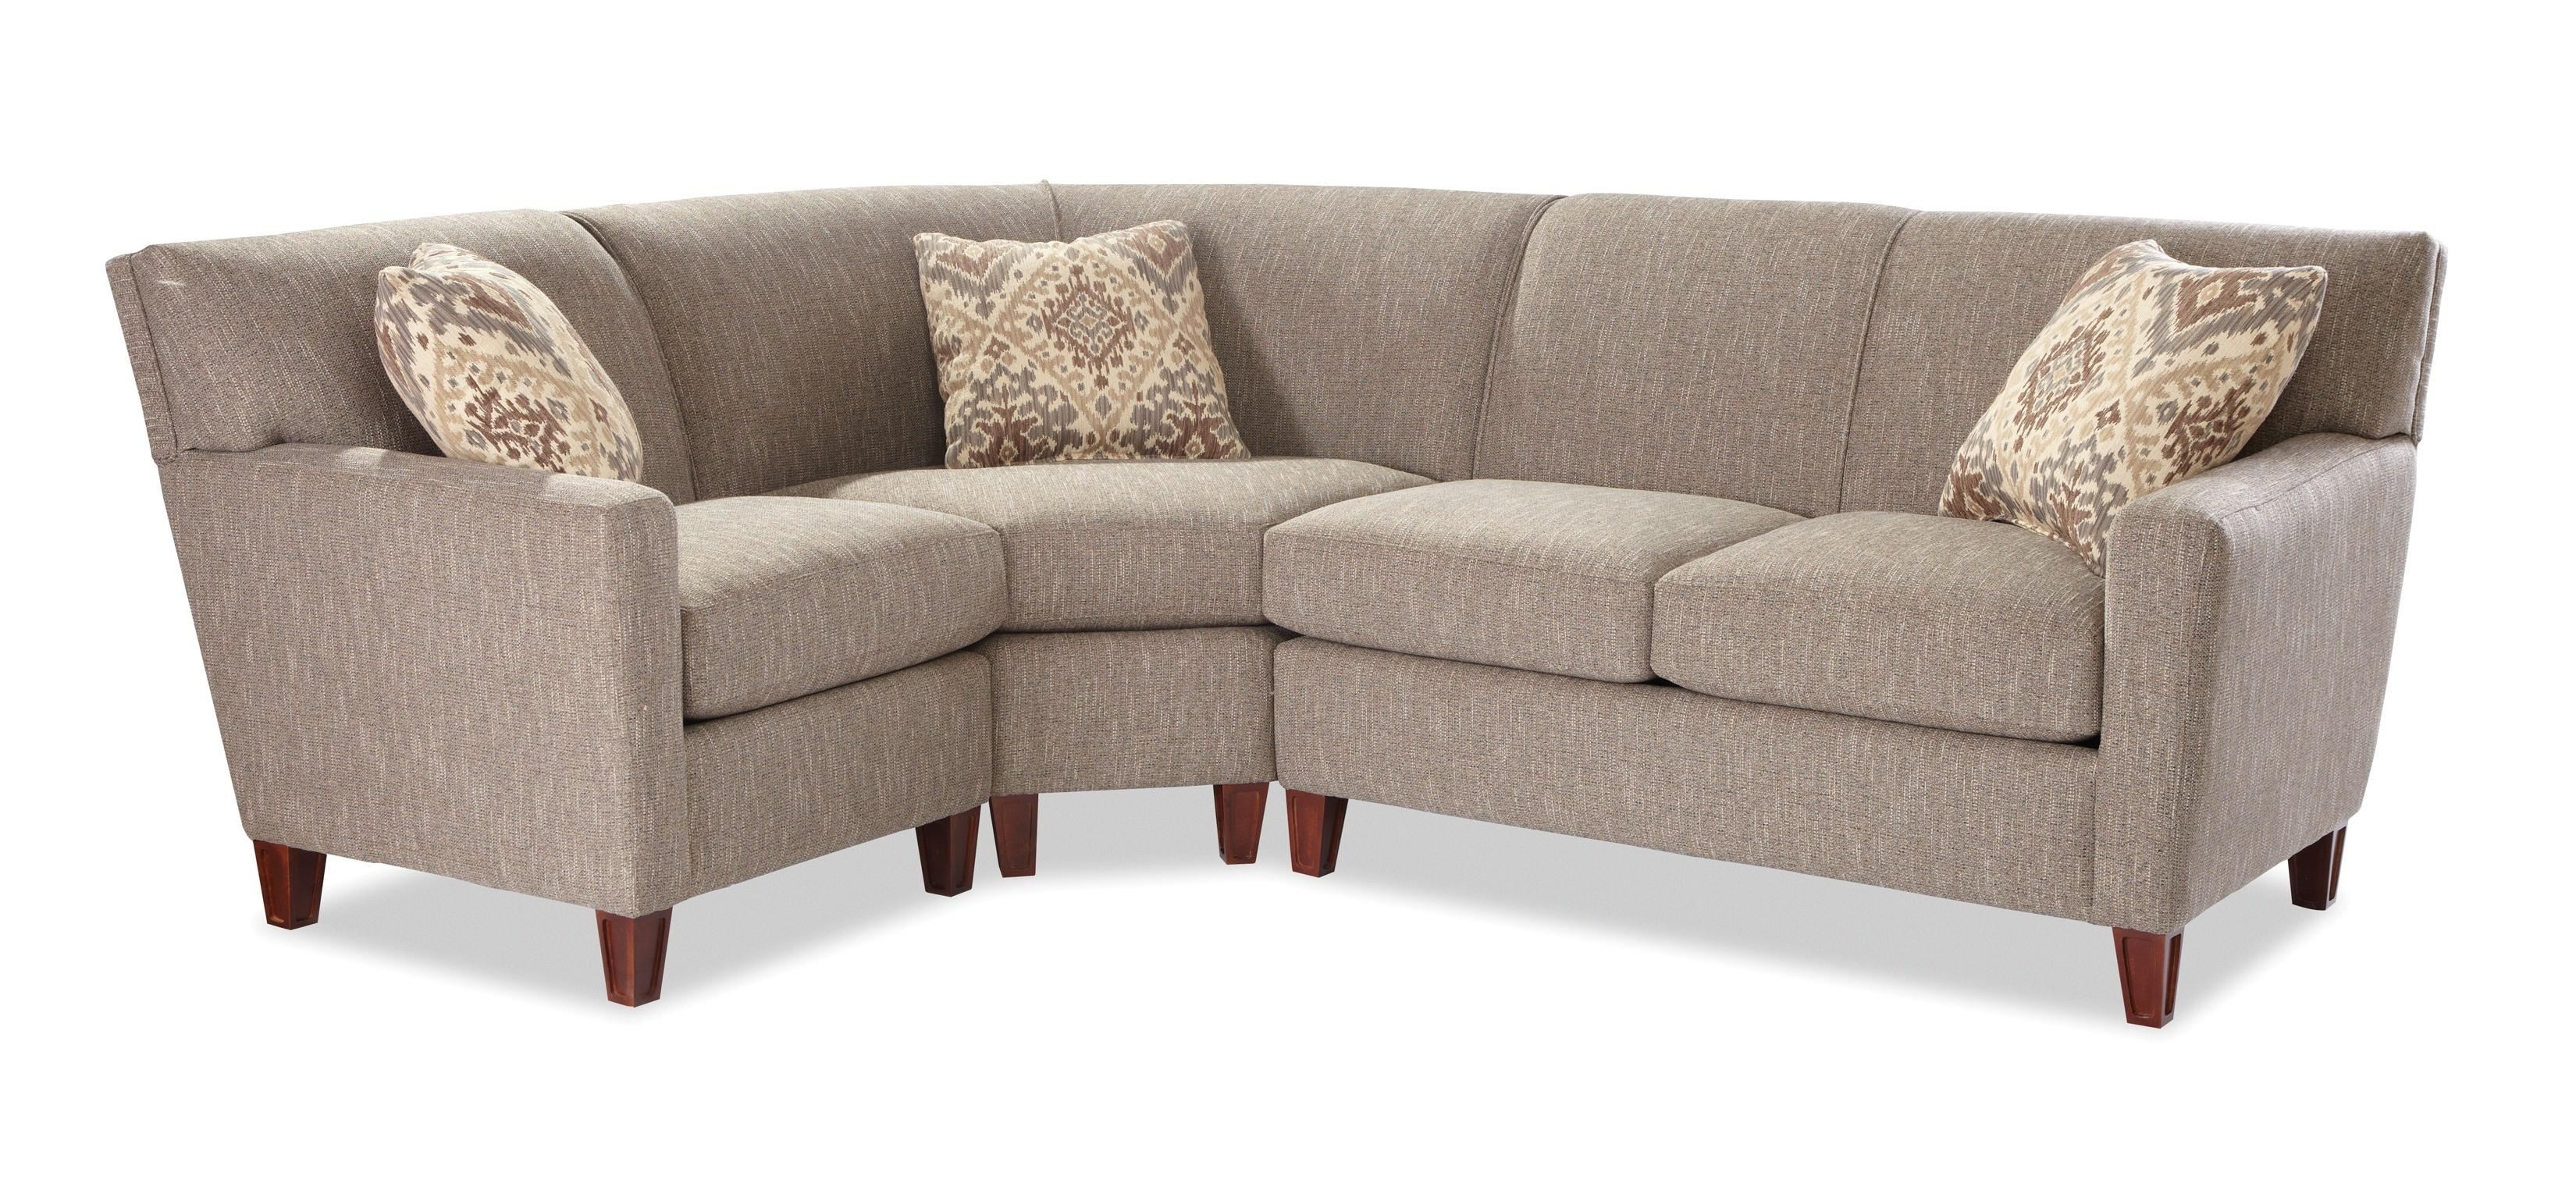 Laf Sofa Raf Loveseat | Baci Living Room For Turdur 2 Piece Sectionals With Laf Loveseat (Image 6 of 25)